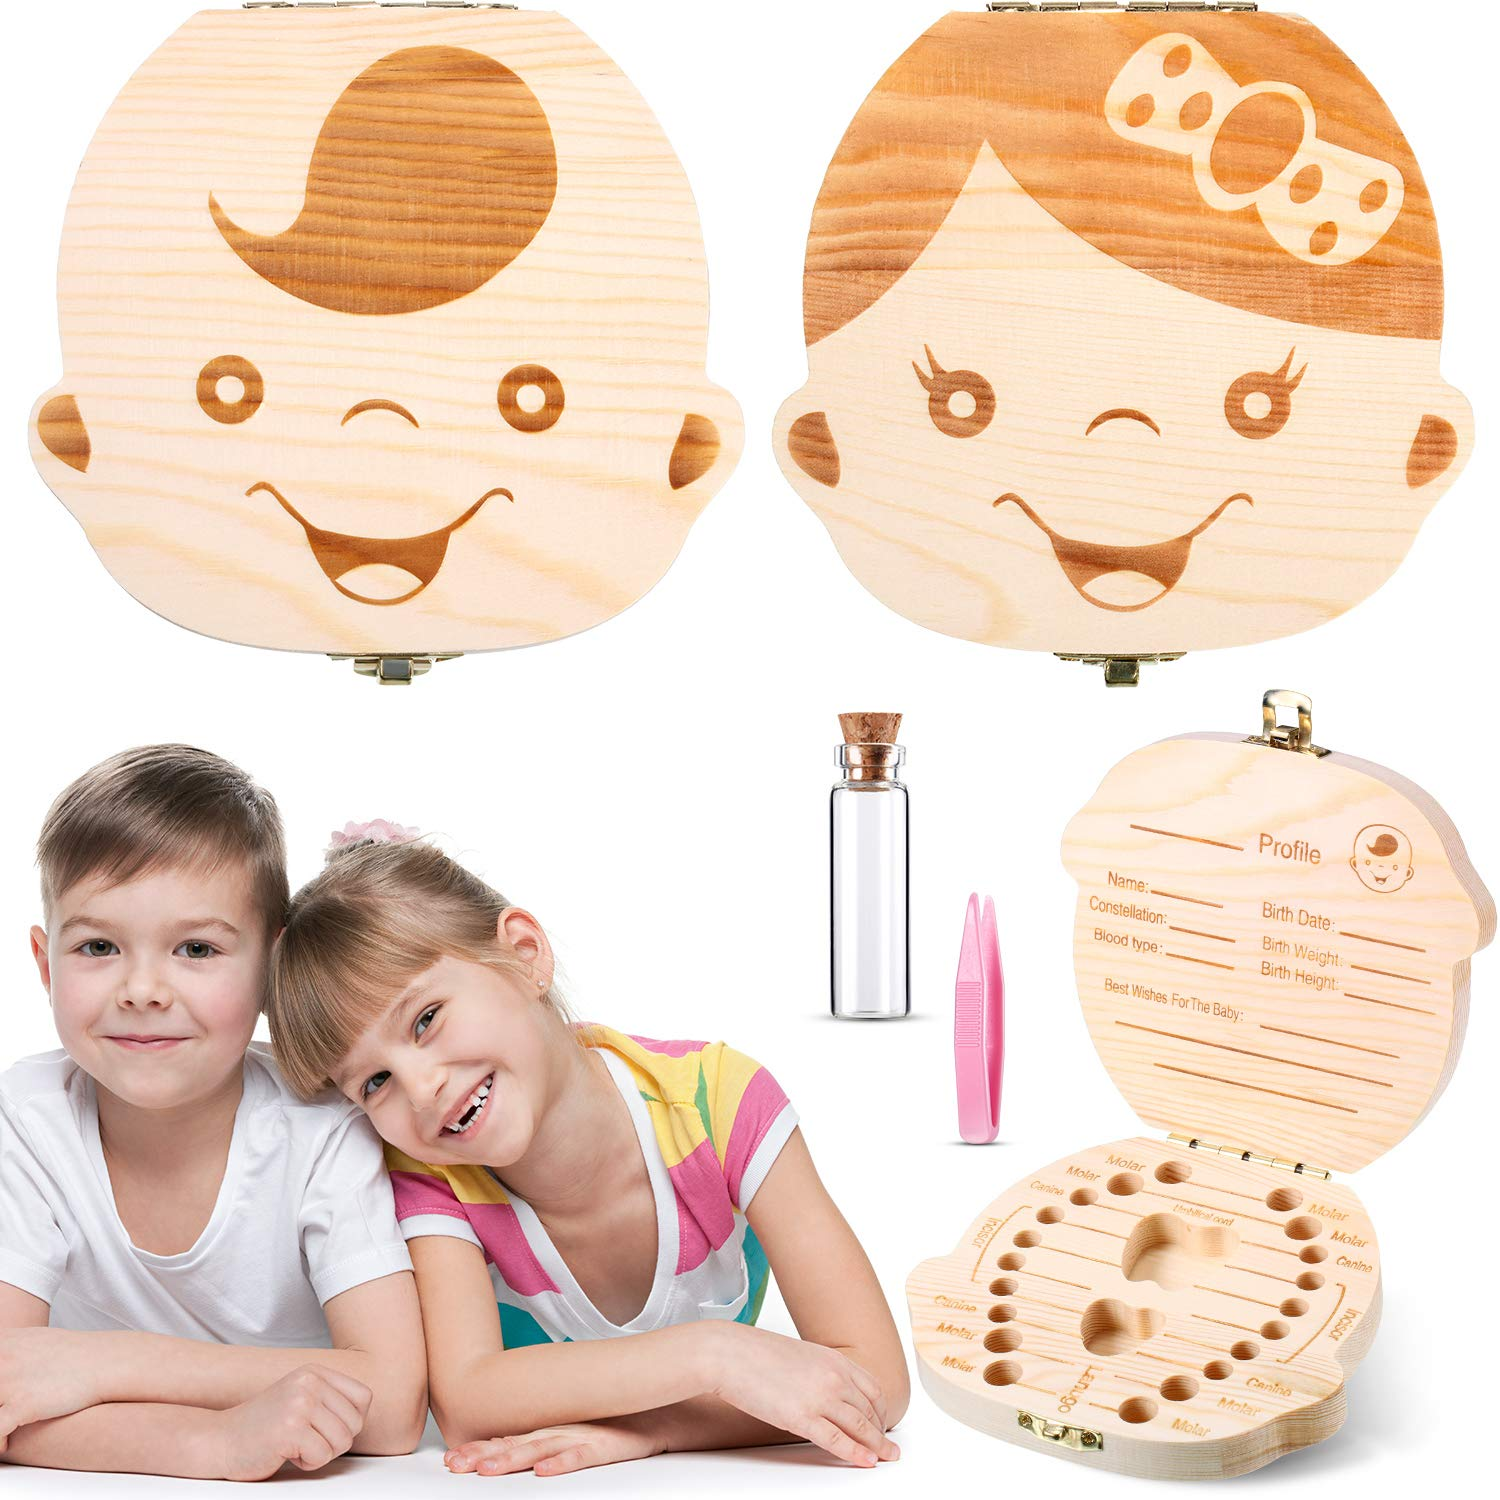 English Gril Wooden Childrens Souvenir Organizer Baby Teeth Gift Cute Childs Teeth Container Keeping Childrens Memory with Tweezers youeneom Baby Tooth Box